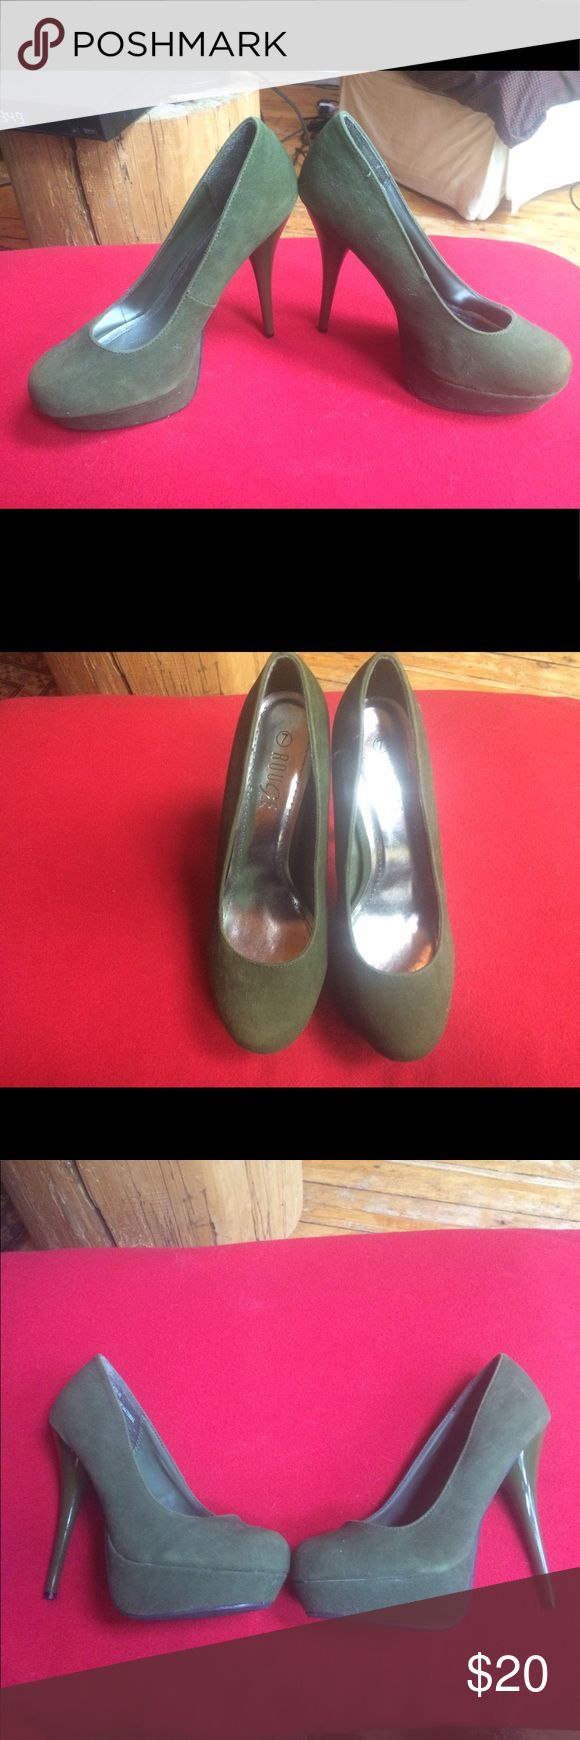 Beautiful olive green heels Size 7 reduced price! Faux suede /size 7/about a 4 inch heel helium  Shoes Heels